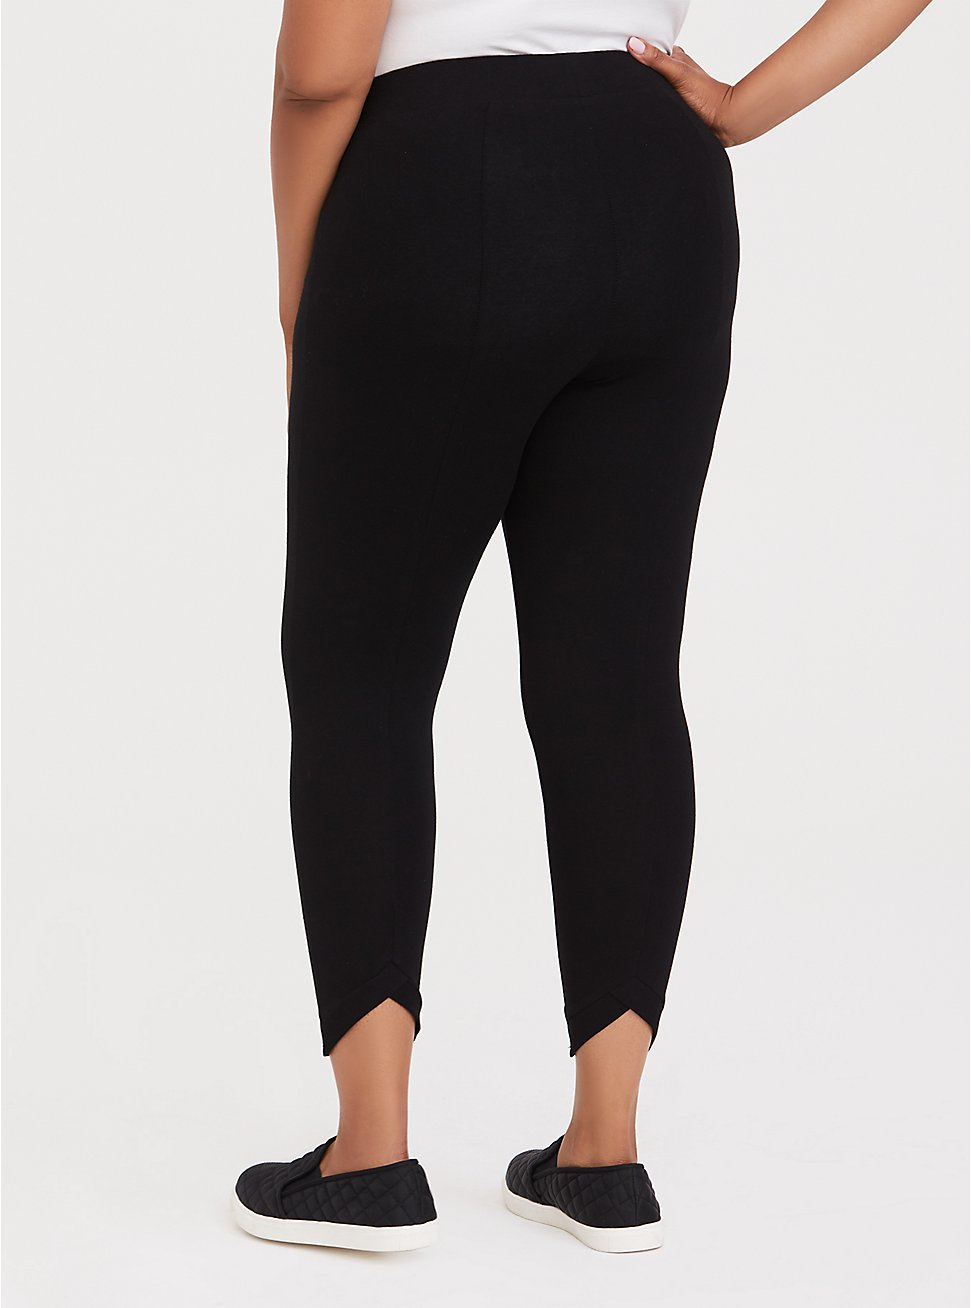 Plus Size Crop Premium Legging - Cutout Back Princess Seam Black, BLACK, hi-res